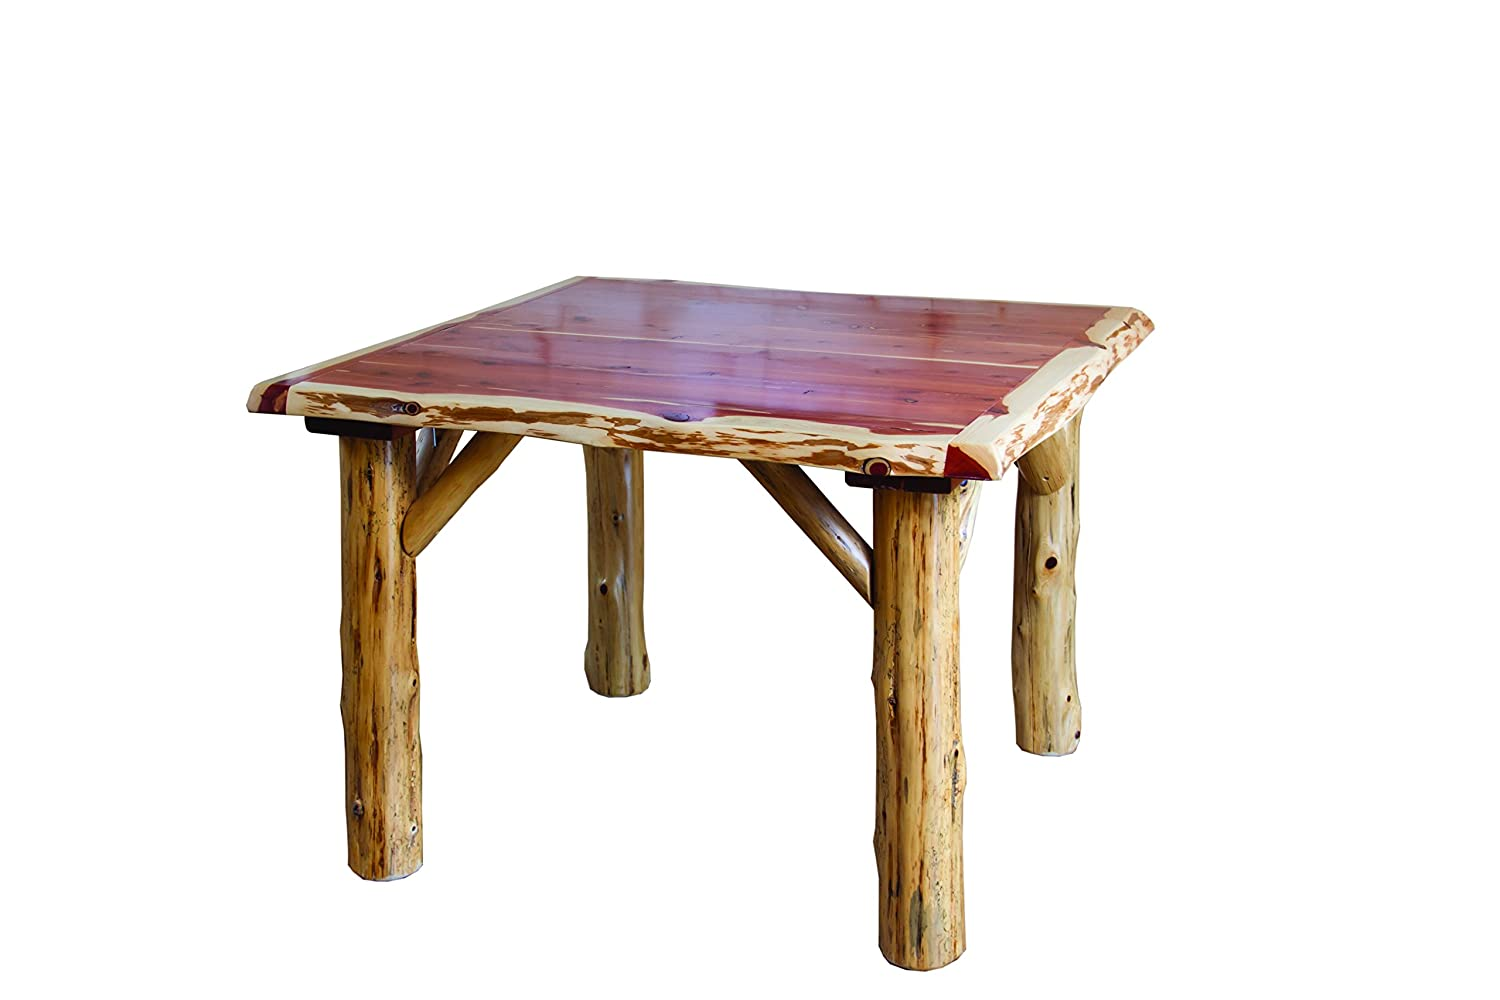 Rustic Red Cedar Log TRADITIONAL SQUARE DINING TABLE AND 4 CHAIR SET